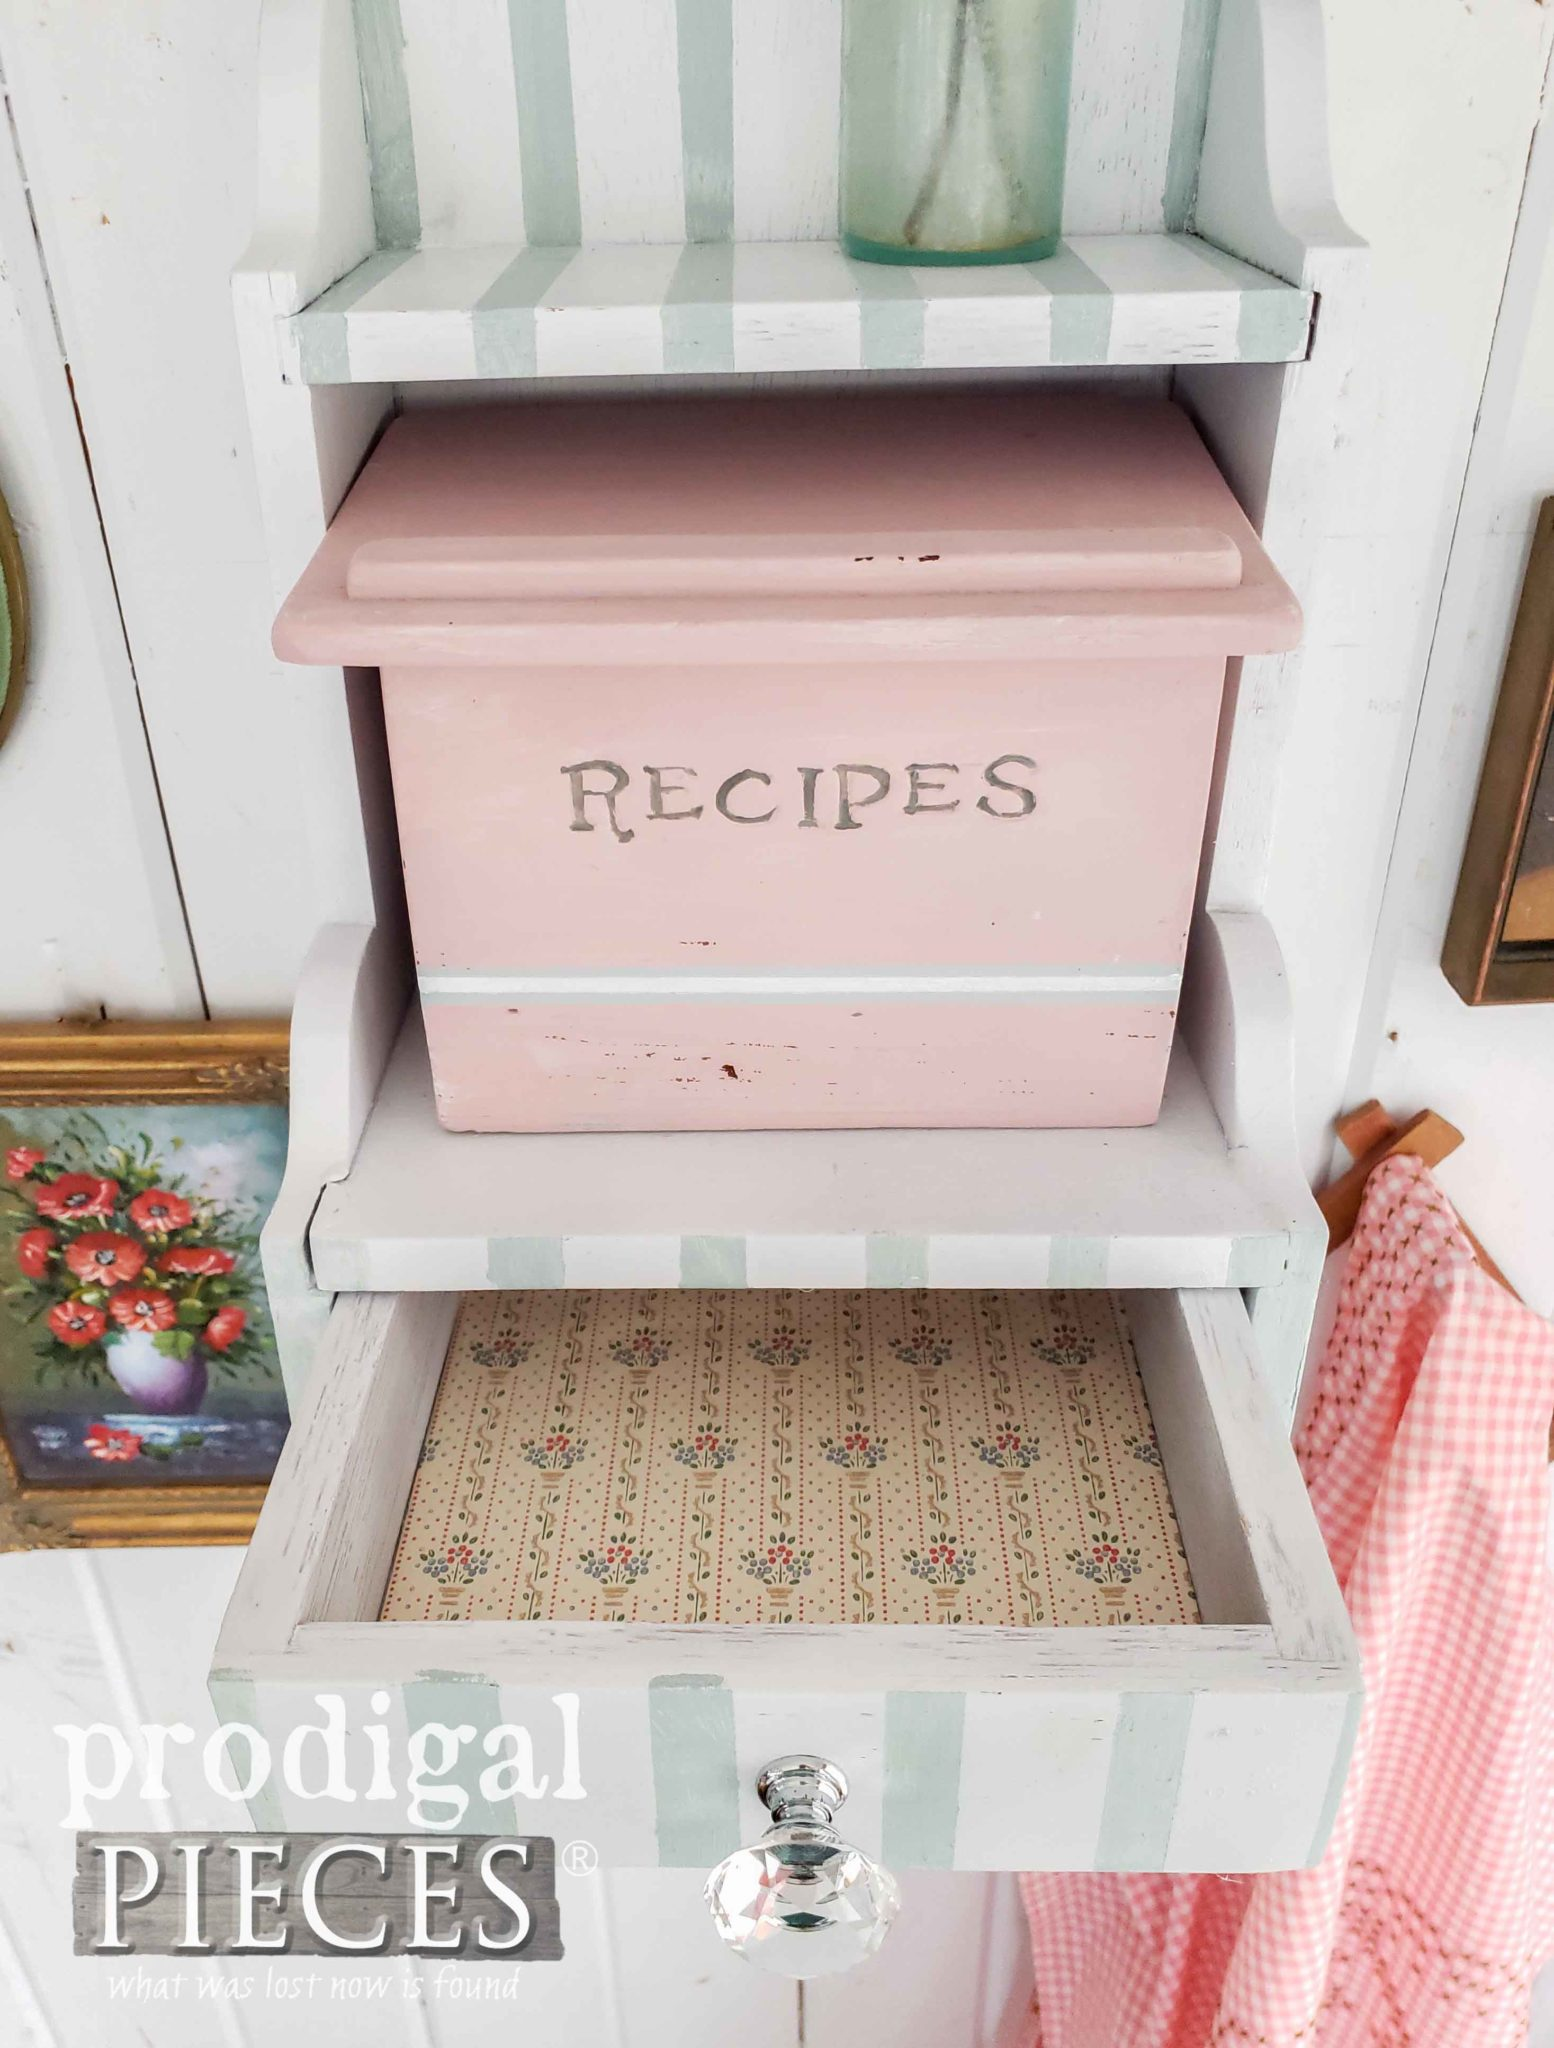 Open Paper-lined Drawer of Vintage Recipe Box with Cottage Style by Larissa of Prodigal Pieces | prodigalpieces.com #prodigalpieces #diy #home #vintage #homedecor